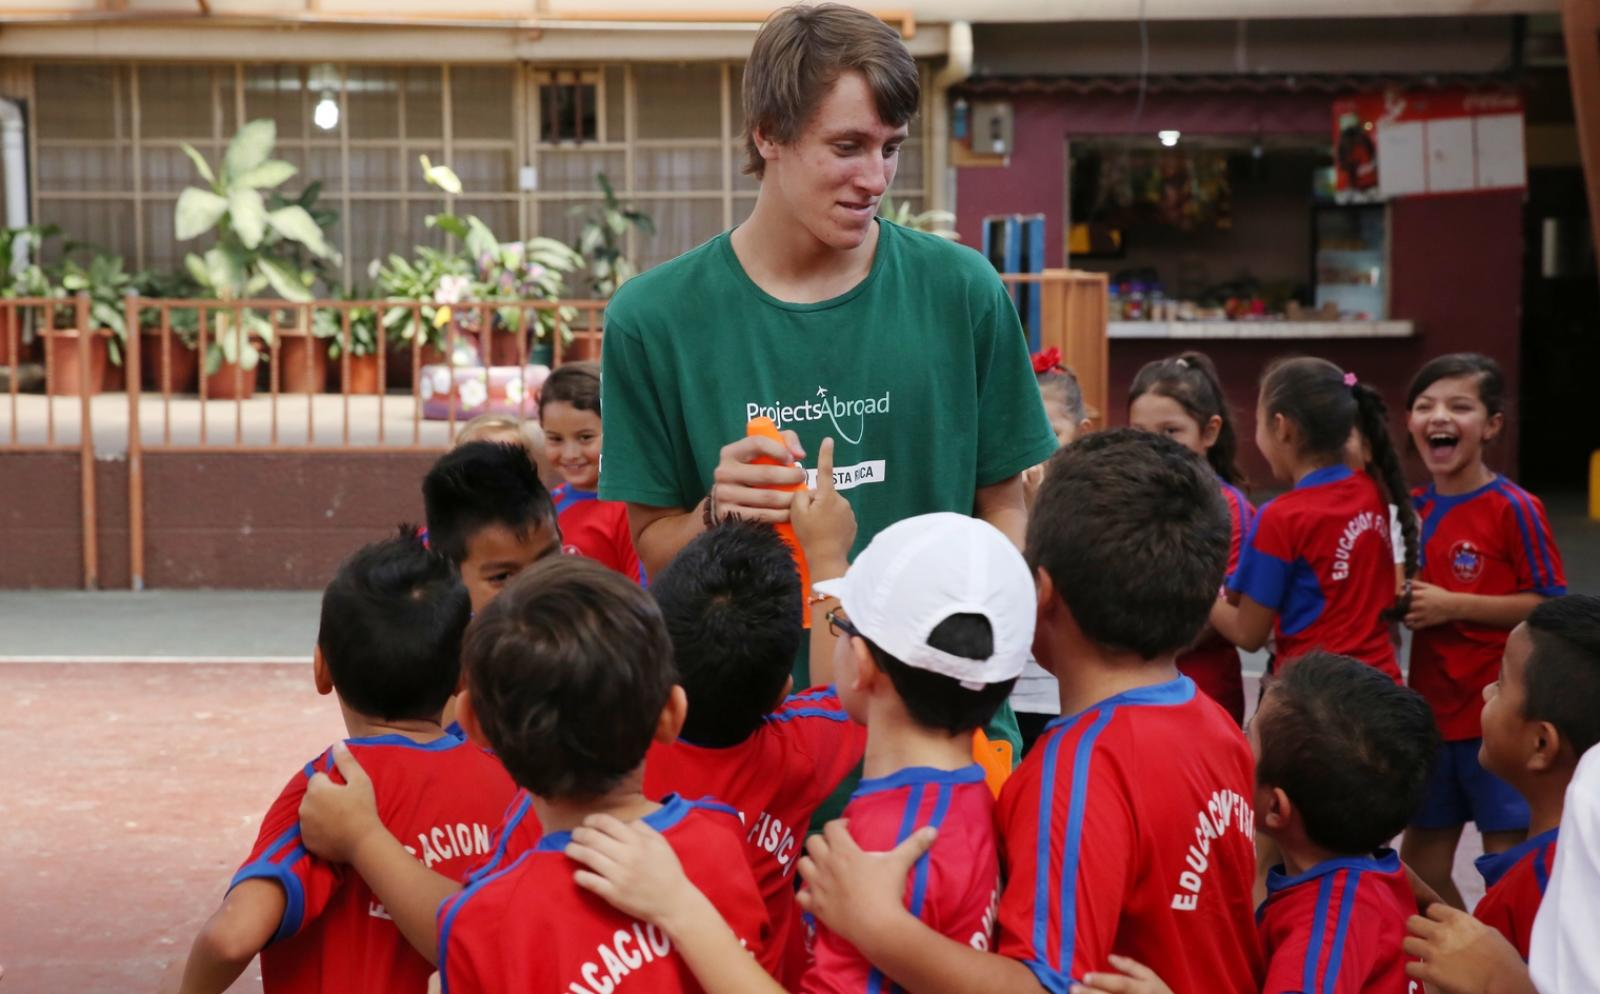 Children in Costa Rica around a Projects Abroad volunteer during a sport practice